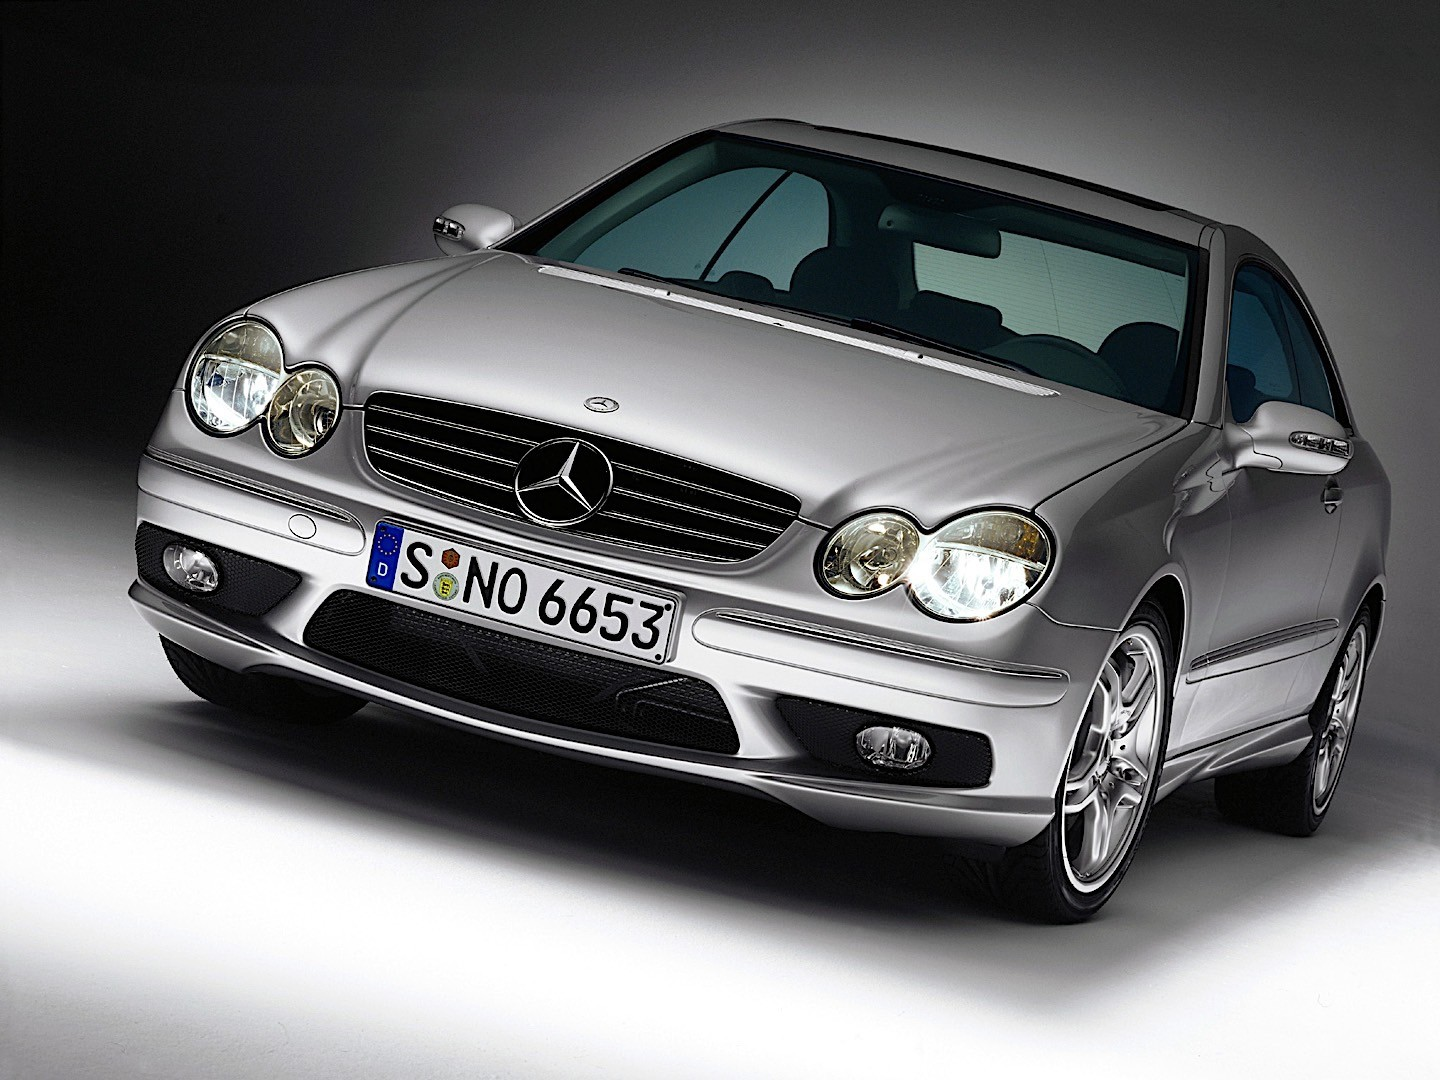 mercedes benz clk 55 amg c209 specs 2003 2004 2005 2006 autoevolution. Black Bedroom Furniture Sets. Home Design Ideas